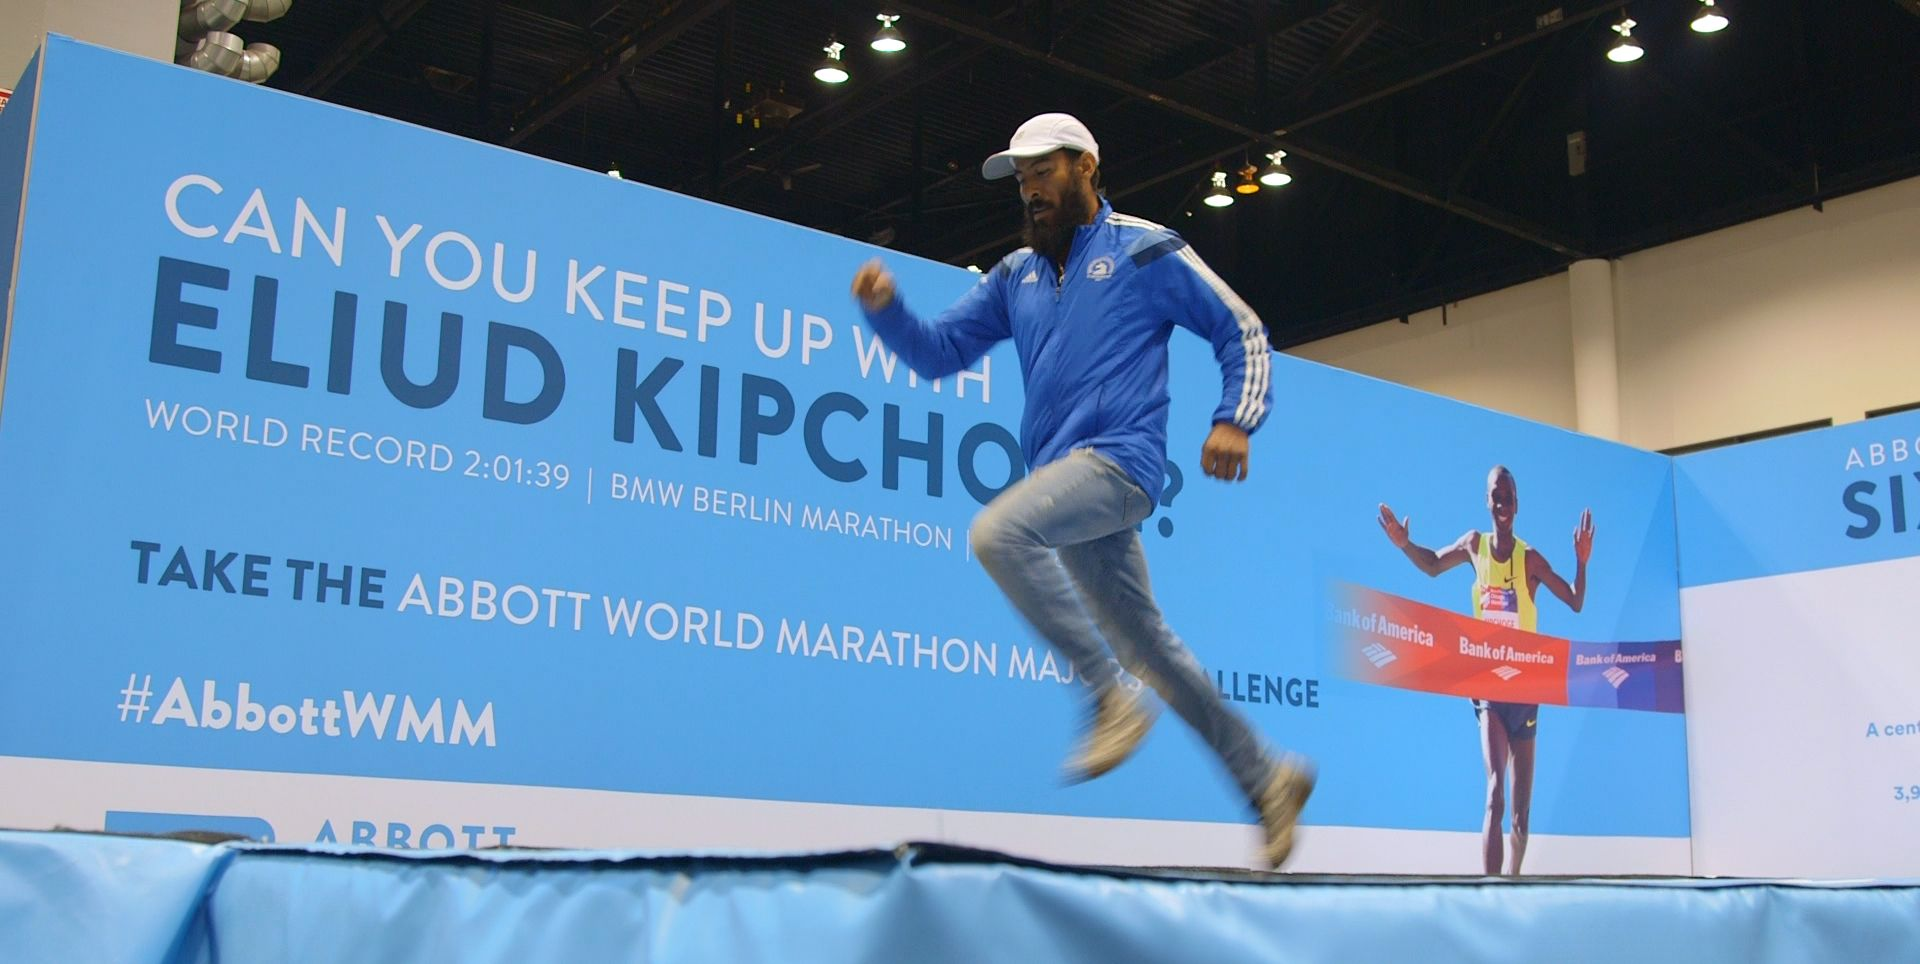 Attendees of the 2018 Chicago Marathon expo attempted a feat no human has been able to do since 2013: Run the same pace as Eliud Kipchoge.